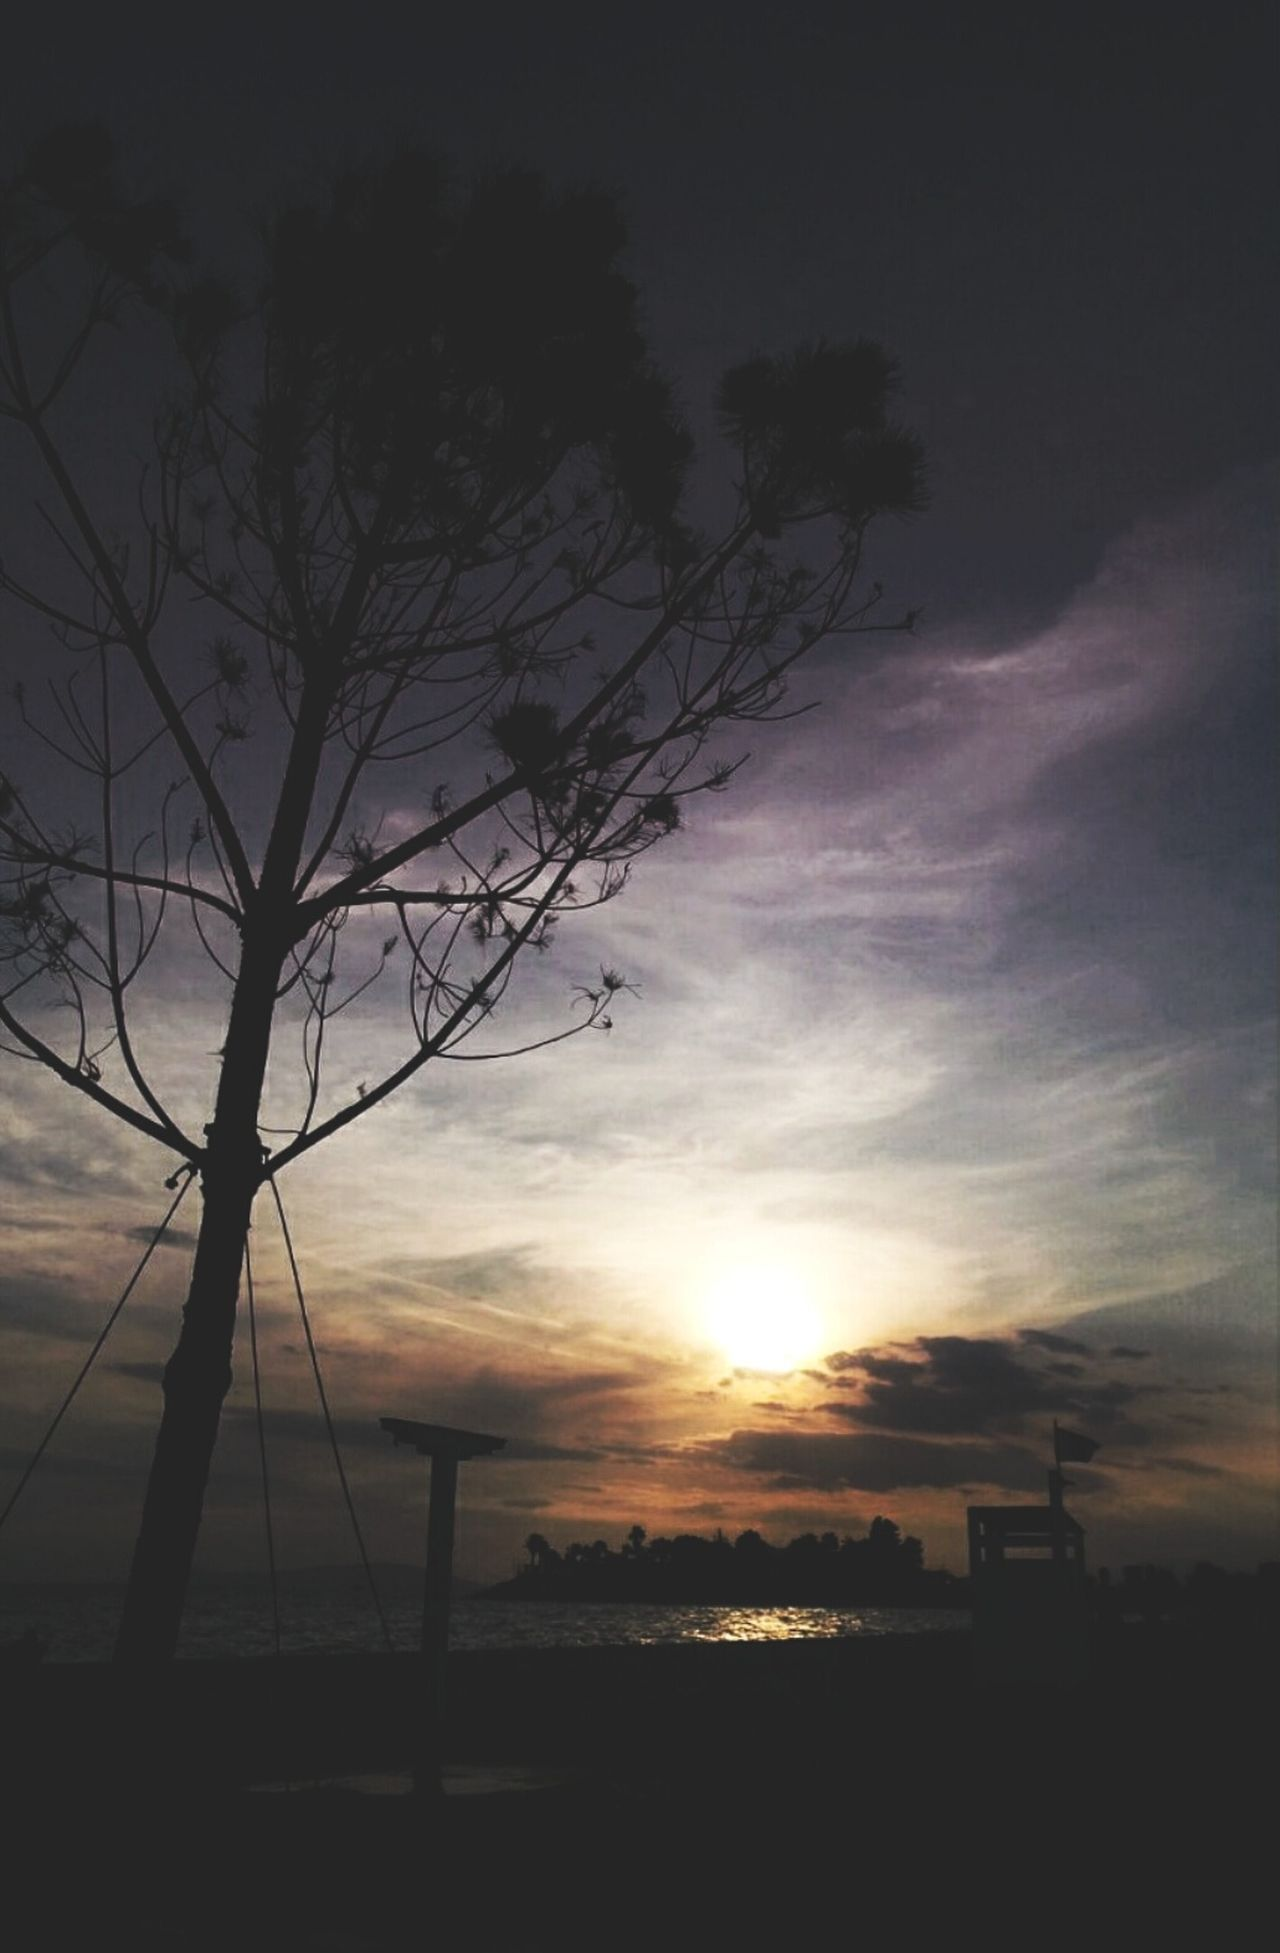 A dark sunset Sunset Silhouette Nature Tree Beauty In Nature Sun Cloud - Sky Bare Tree Dramatic Sky No People Travel Destinations Outdoors Sky Vacations EyeEm Gallery 3XSPUnity Eyeemphotography Greece Hellas Picsoftheday EyeEmBestPics EyeEm Best Shots Sunset_collection Scenics Nature EyeEmNewHere